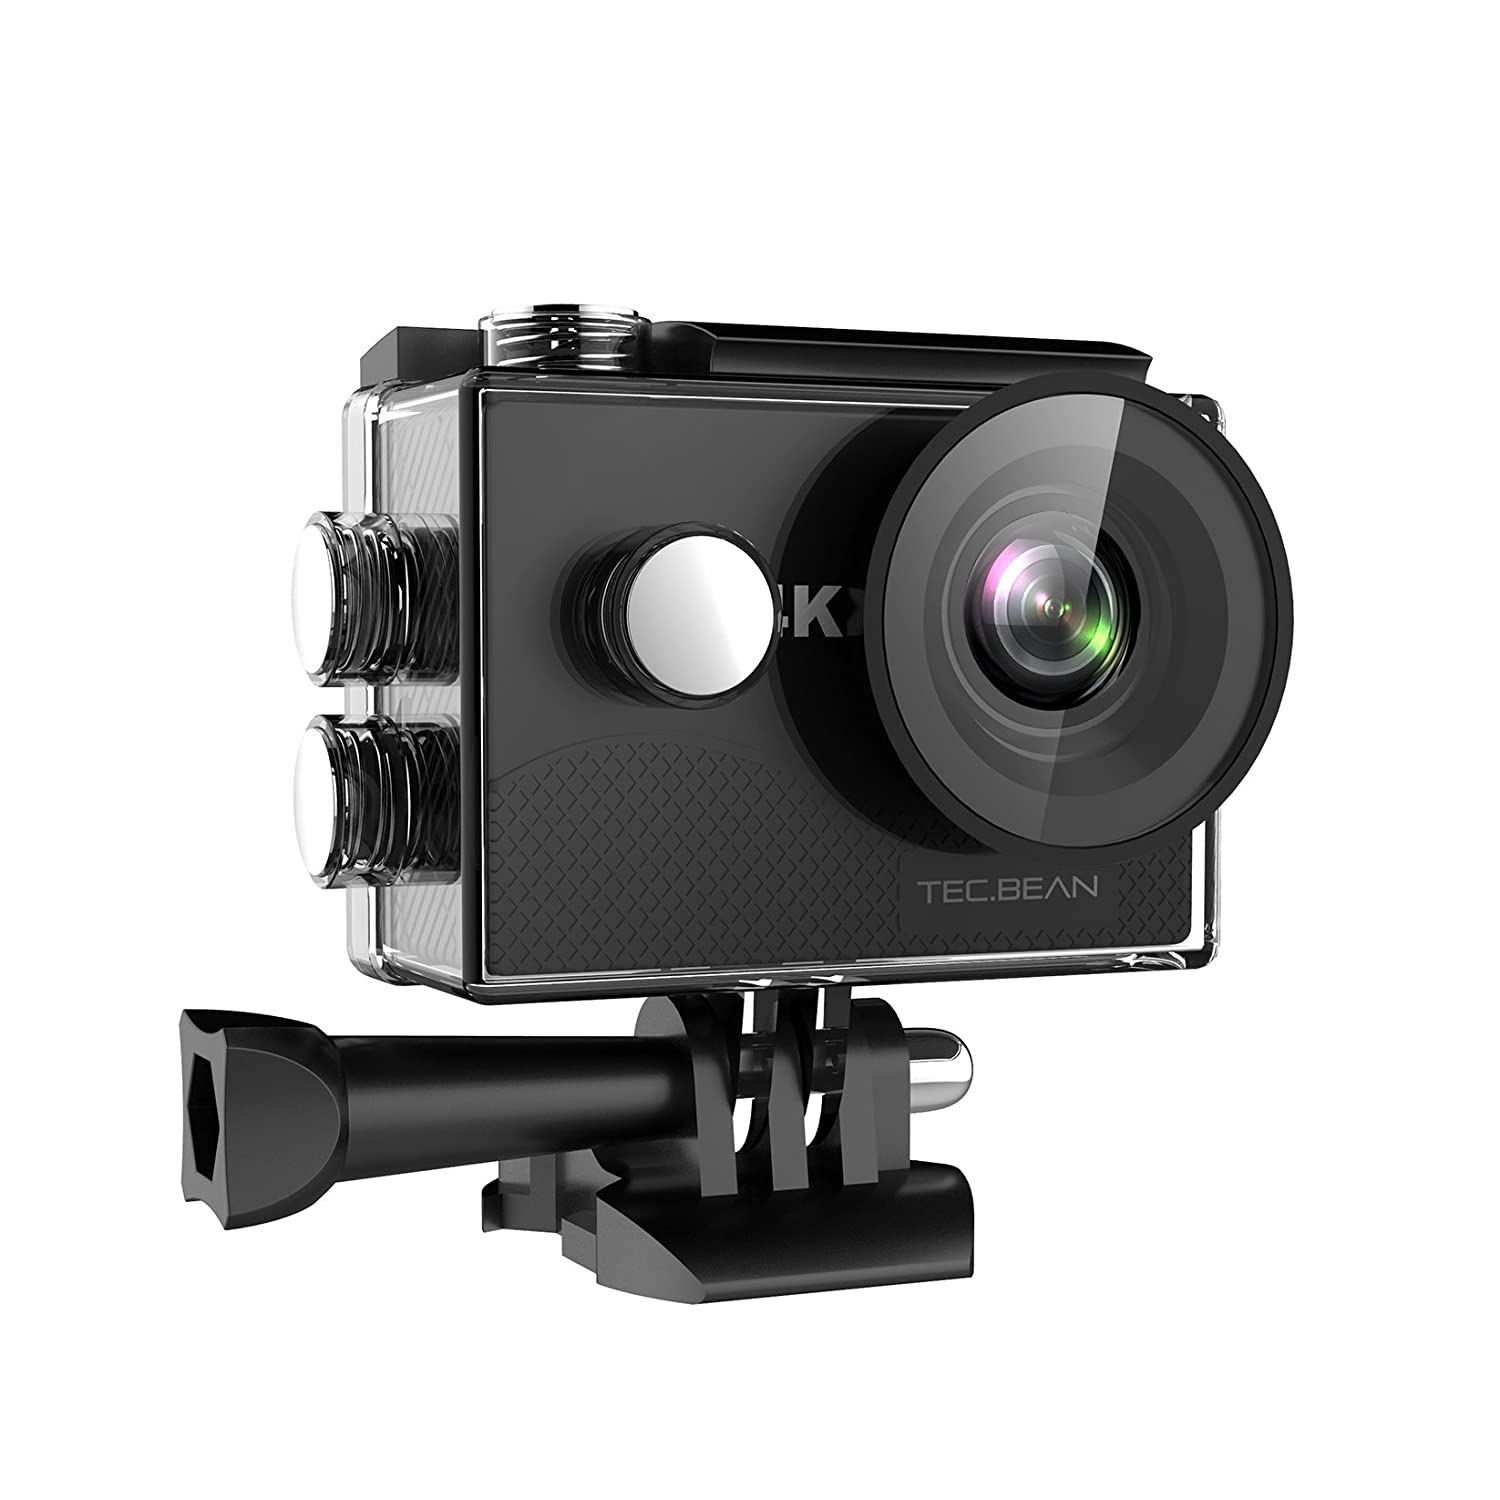 TEC 4K Action Camera – Pantalla LCD FHD de 2.0 pulgadas - Waterproof with Built in WIFI - Batteries and Accessories Included